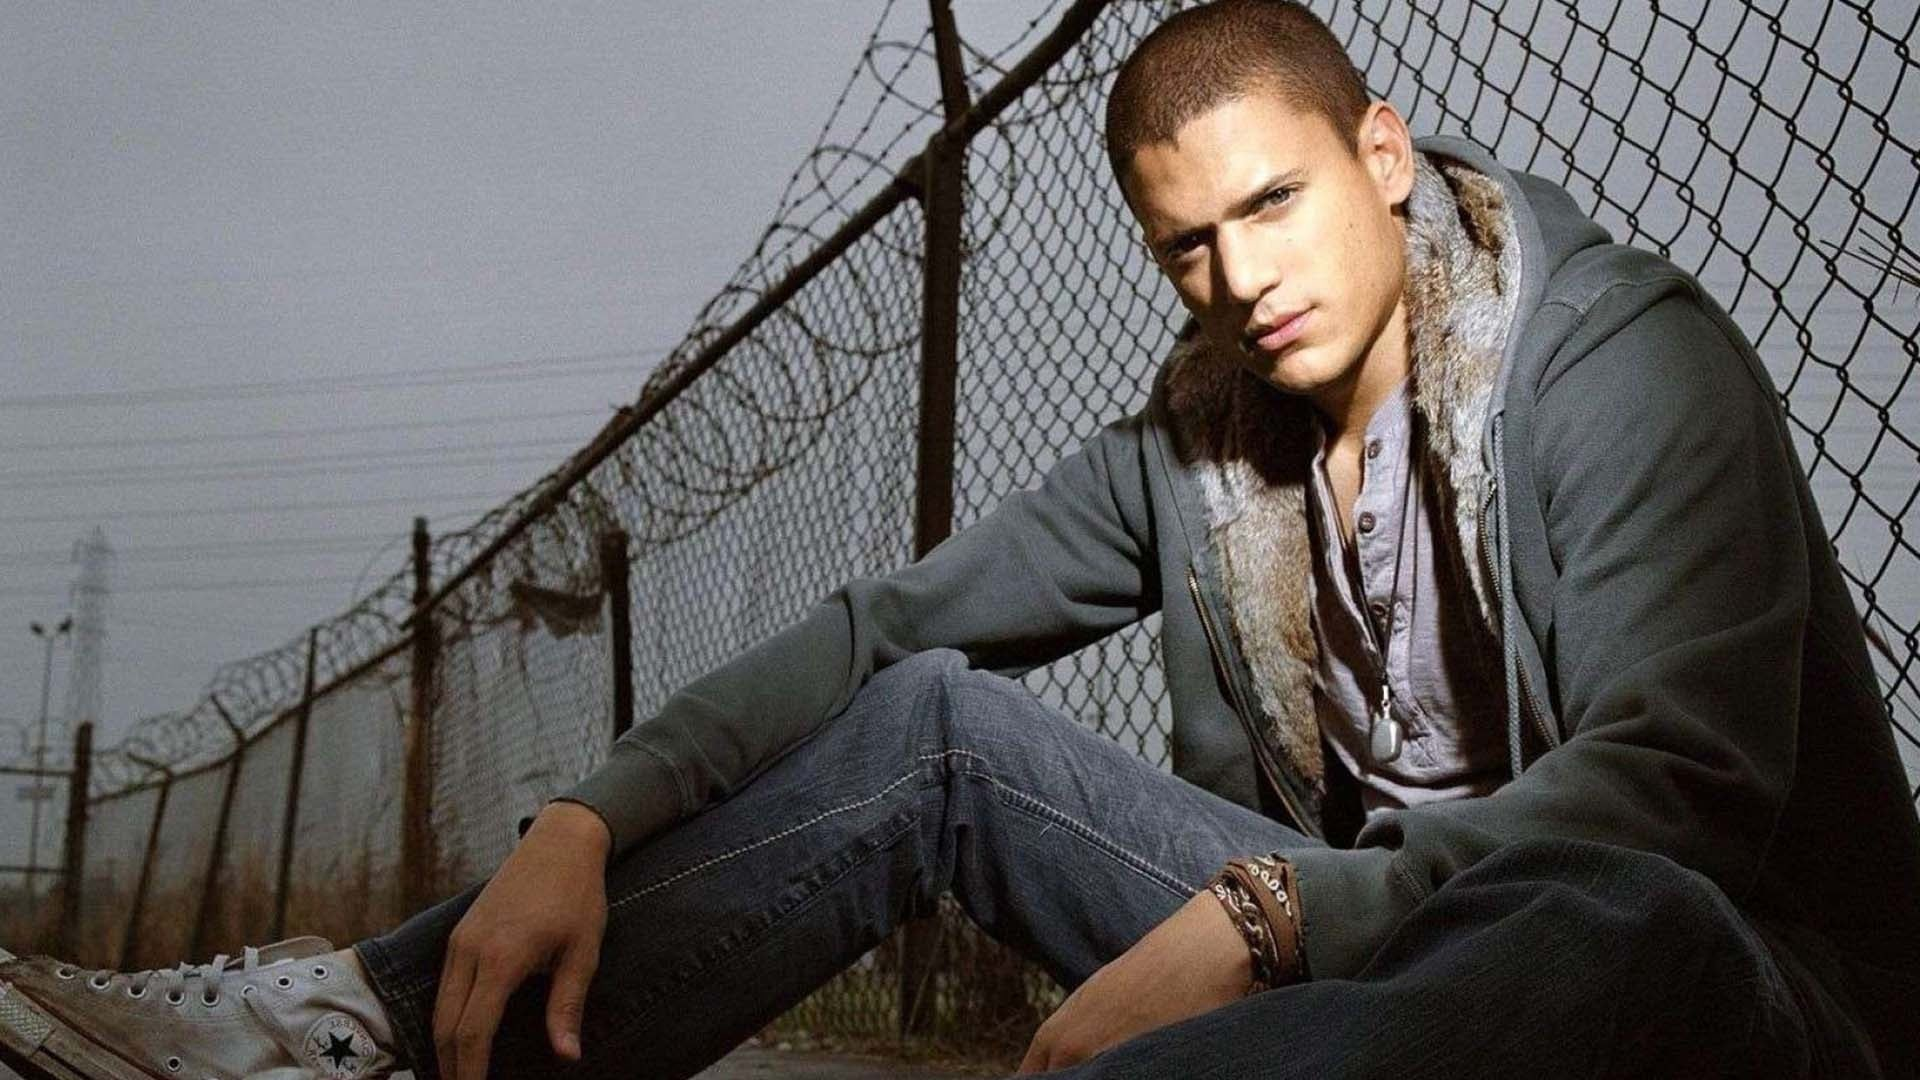 1920x1080 - Wentworth Miller Wallpapers 1